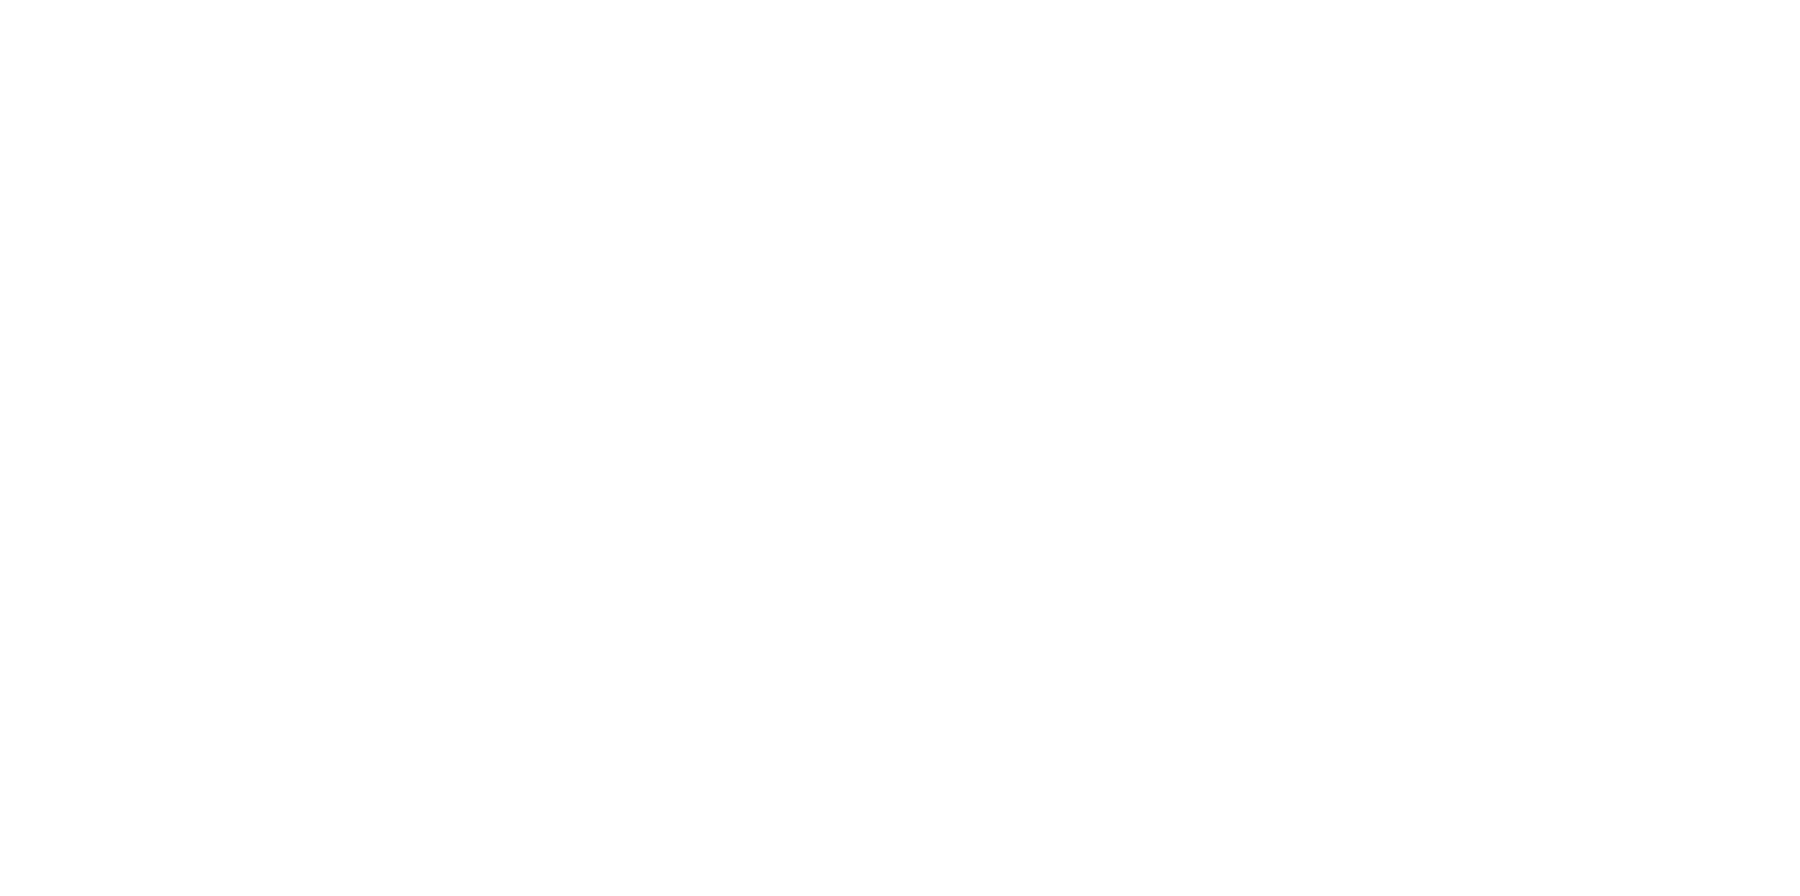 Keith Sumner Homes and Land large white